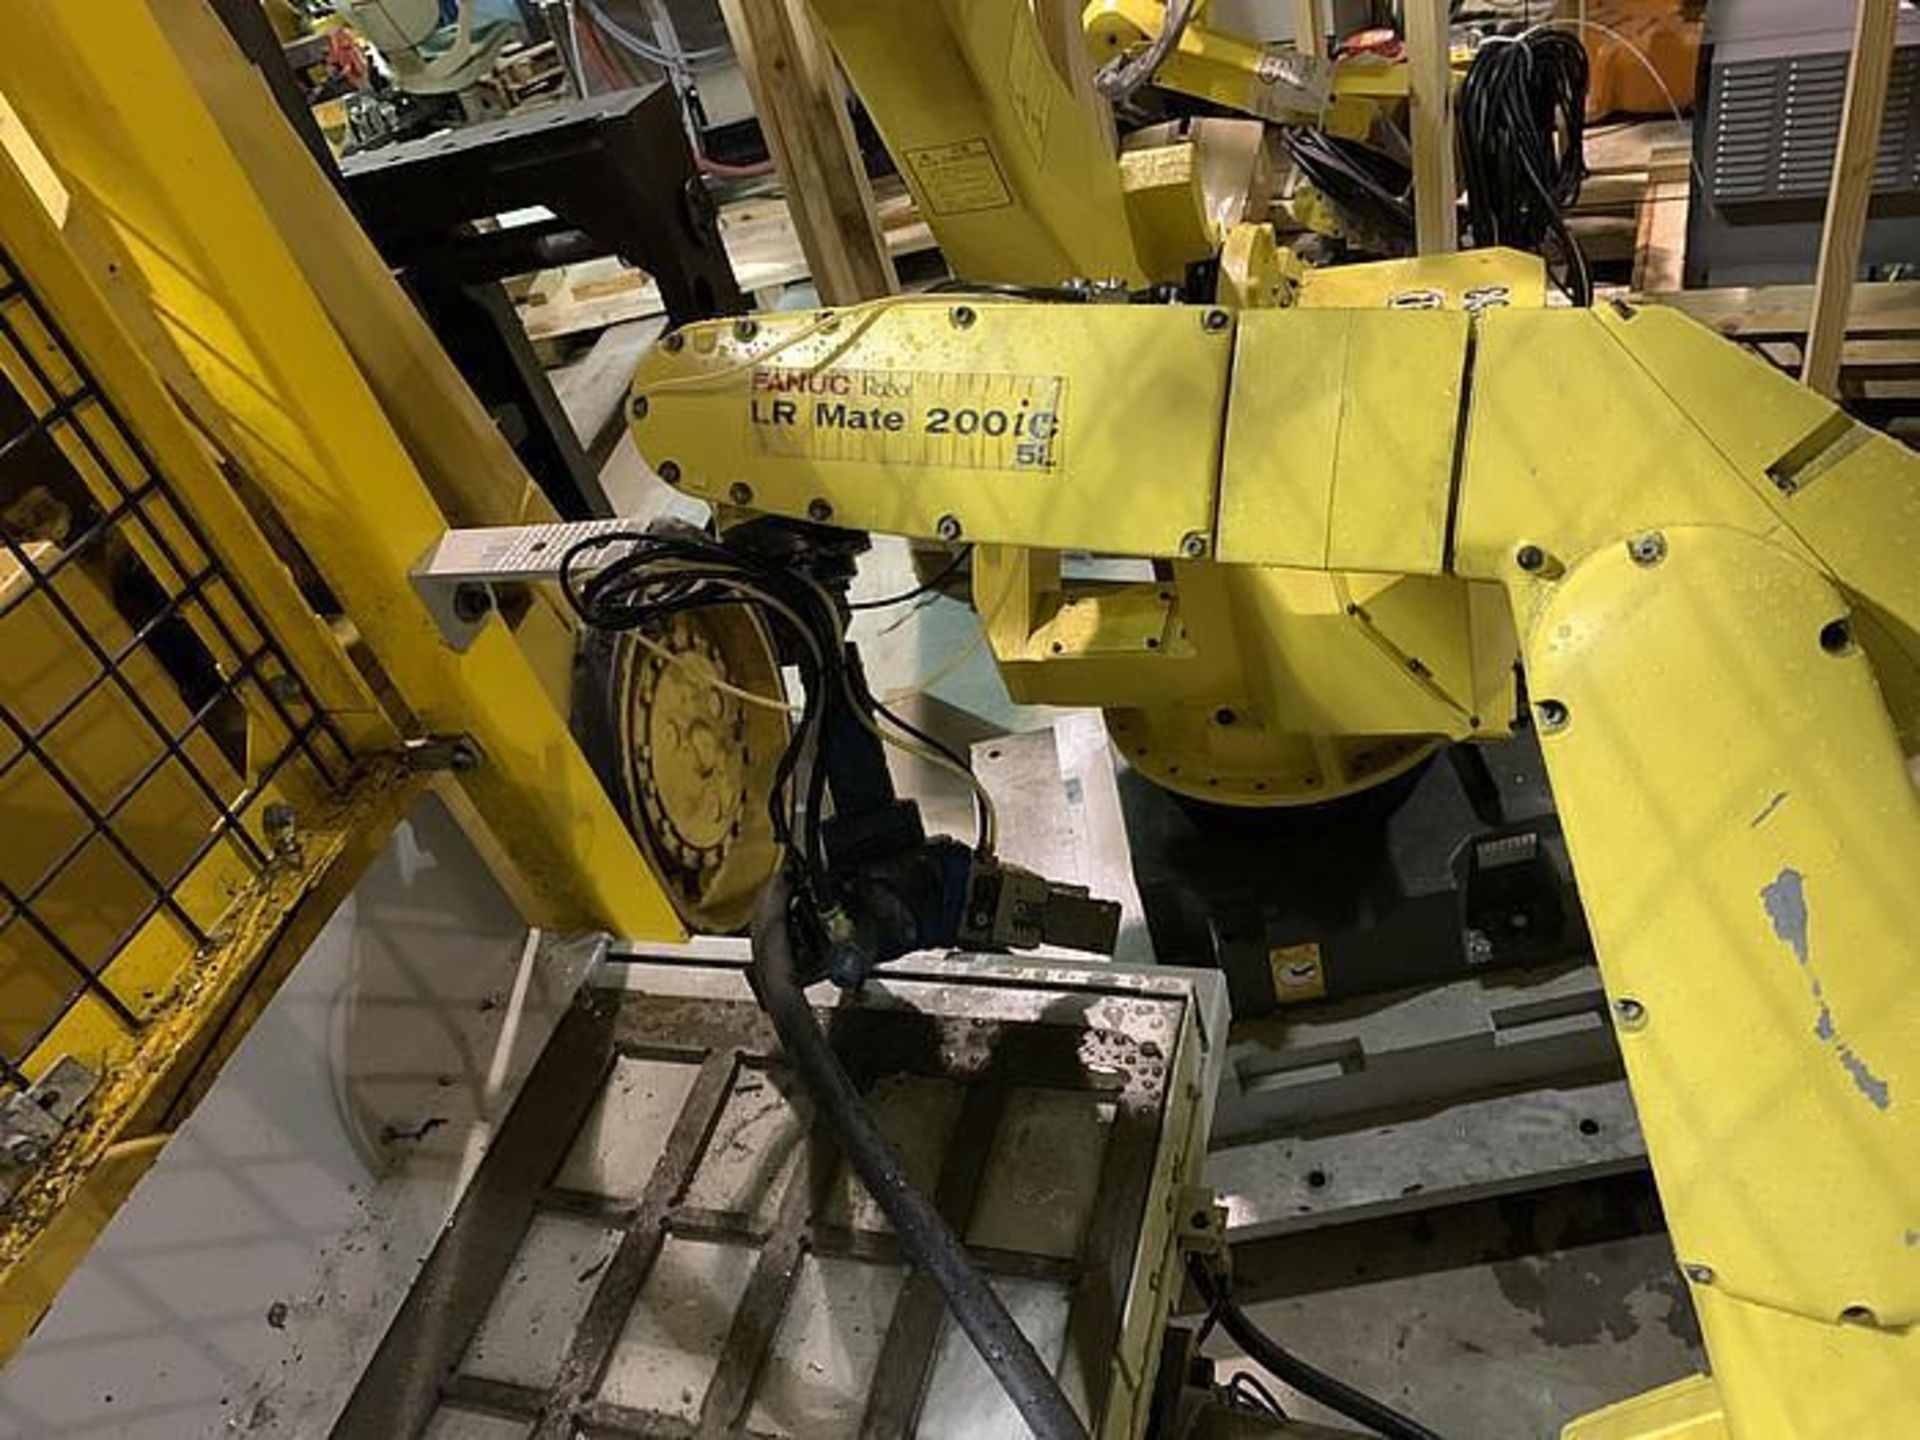 FANUC LR MATE 200iC/5L 6 AXIS CNC ROBOT WITH R30iA CONTROLLER, YEAR 2011, SN F113130 - Image 2 of 6